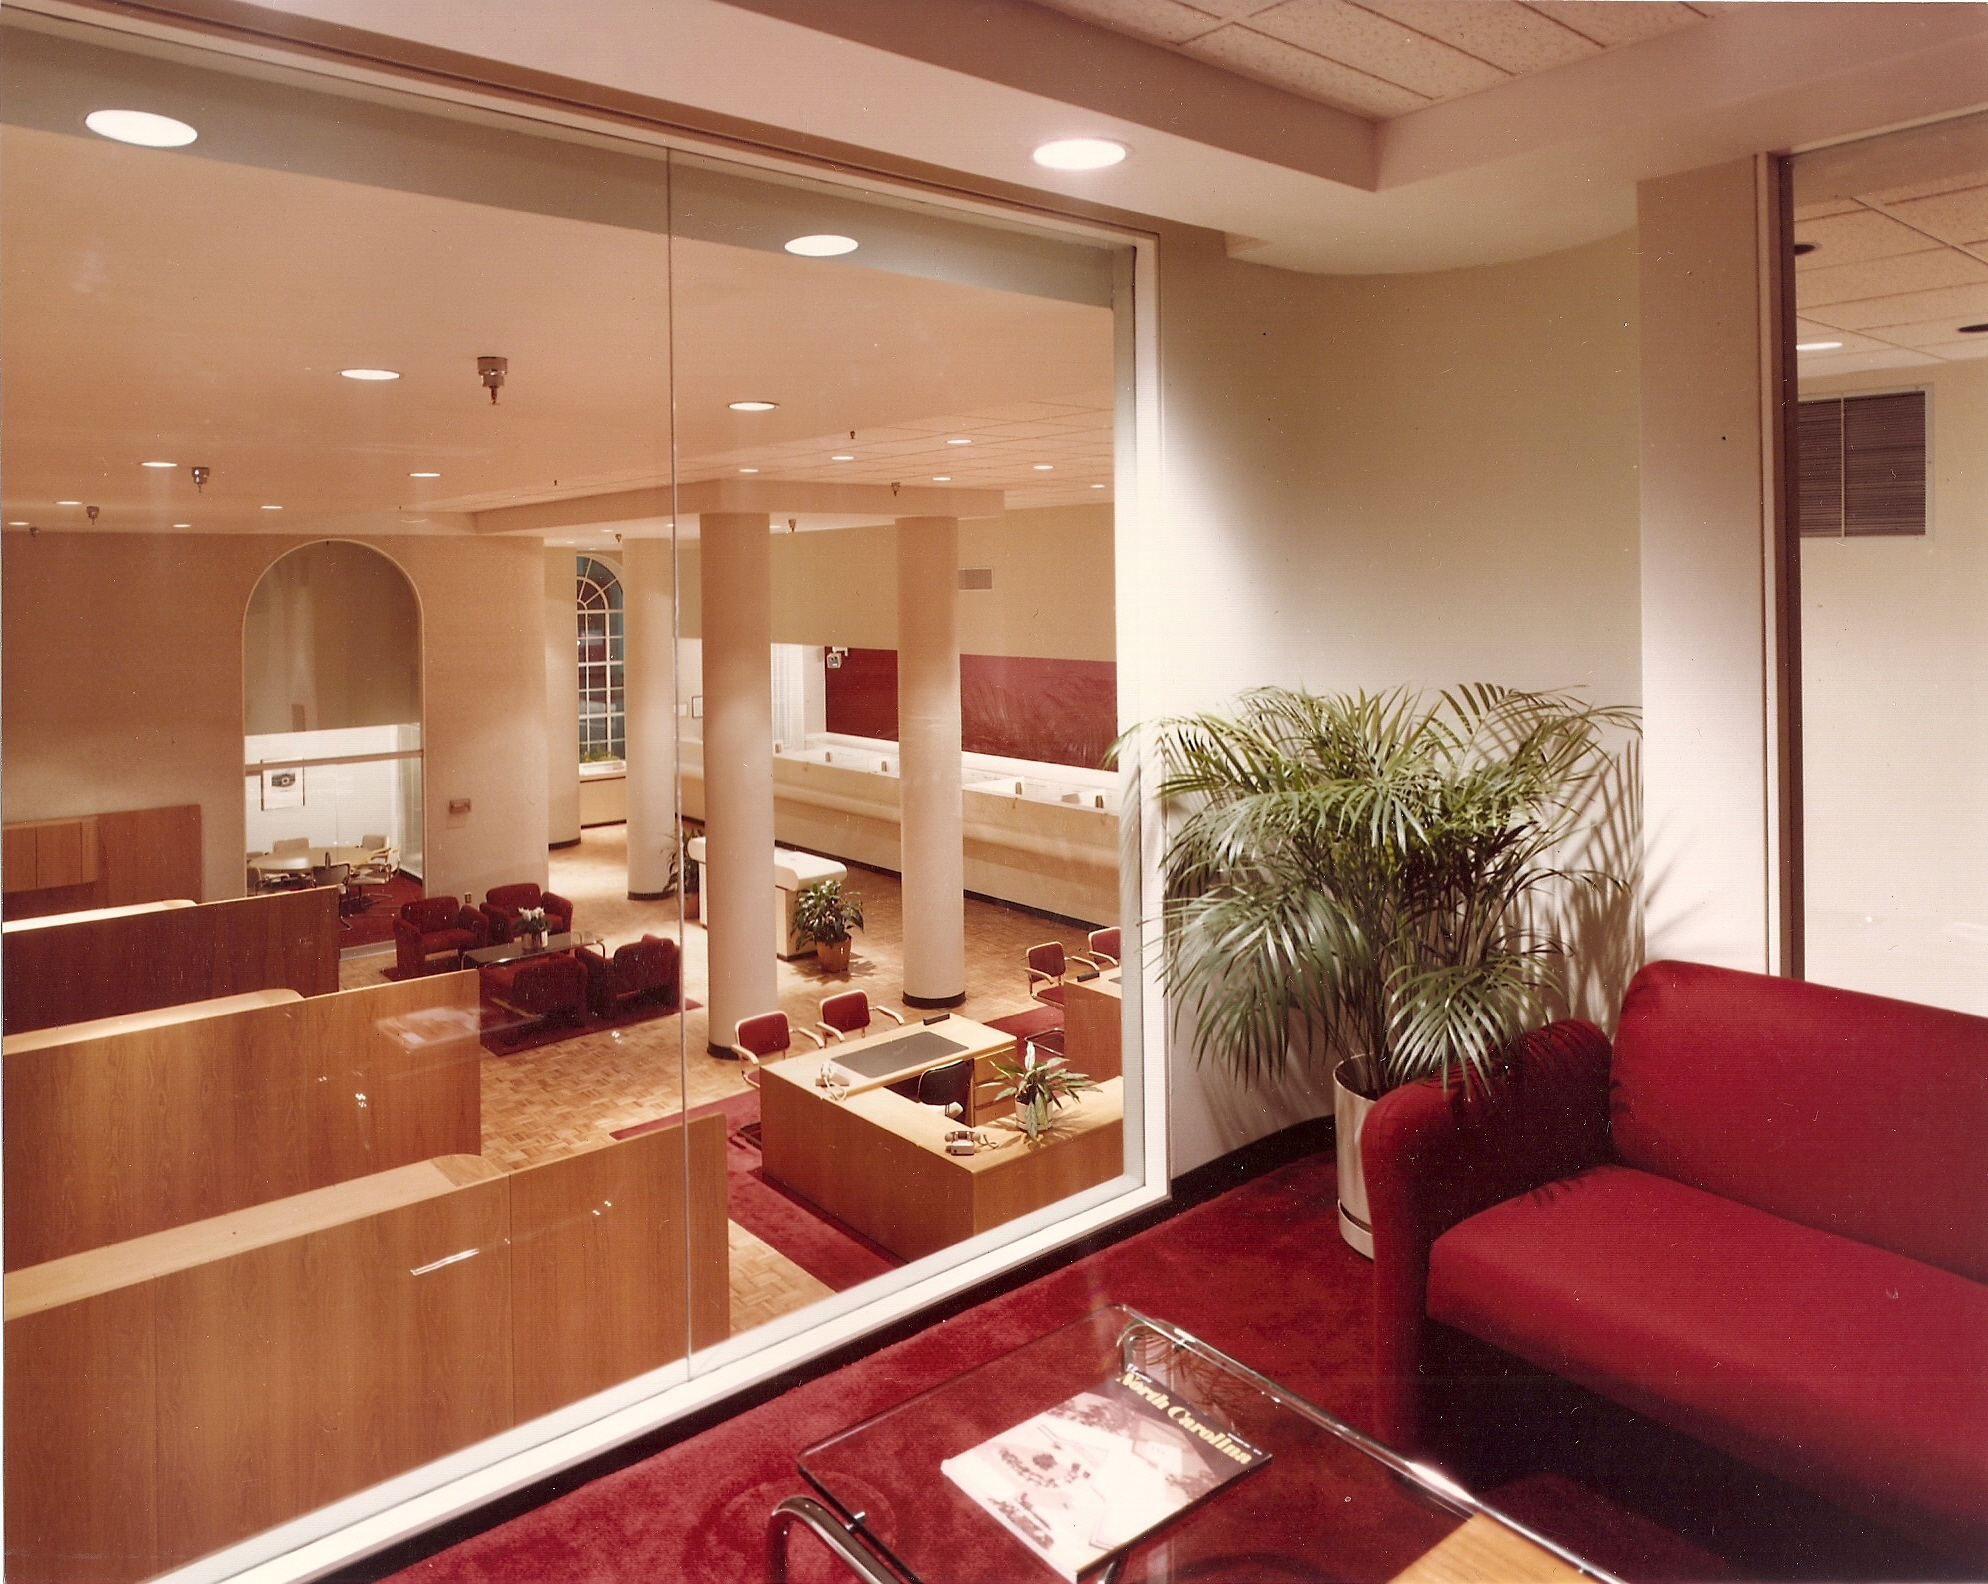 Bank interior overview